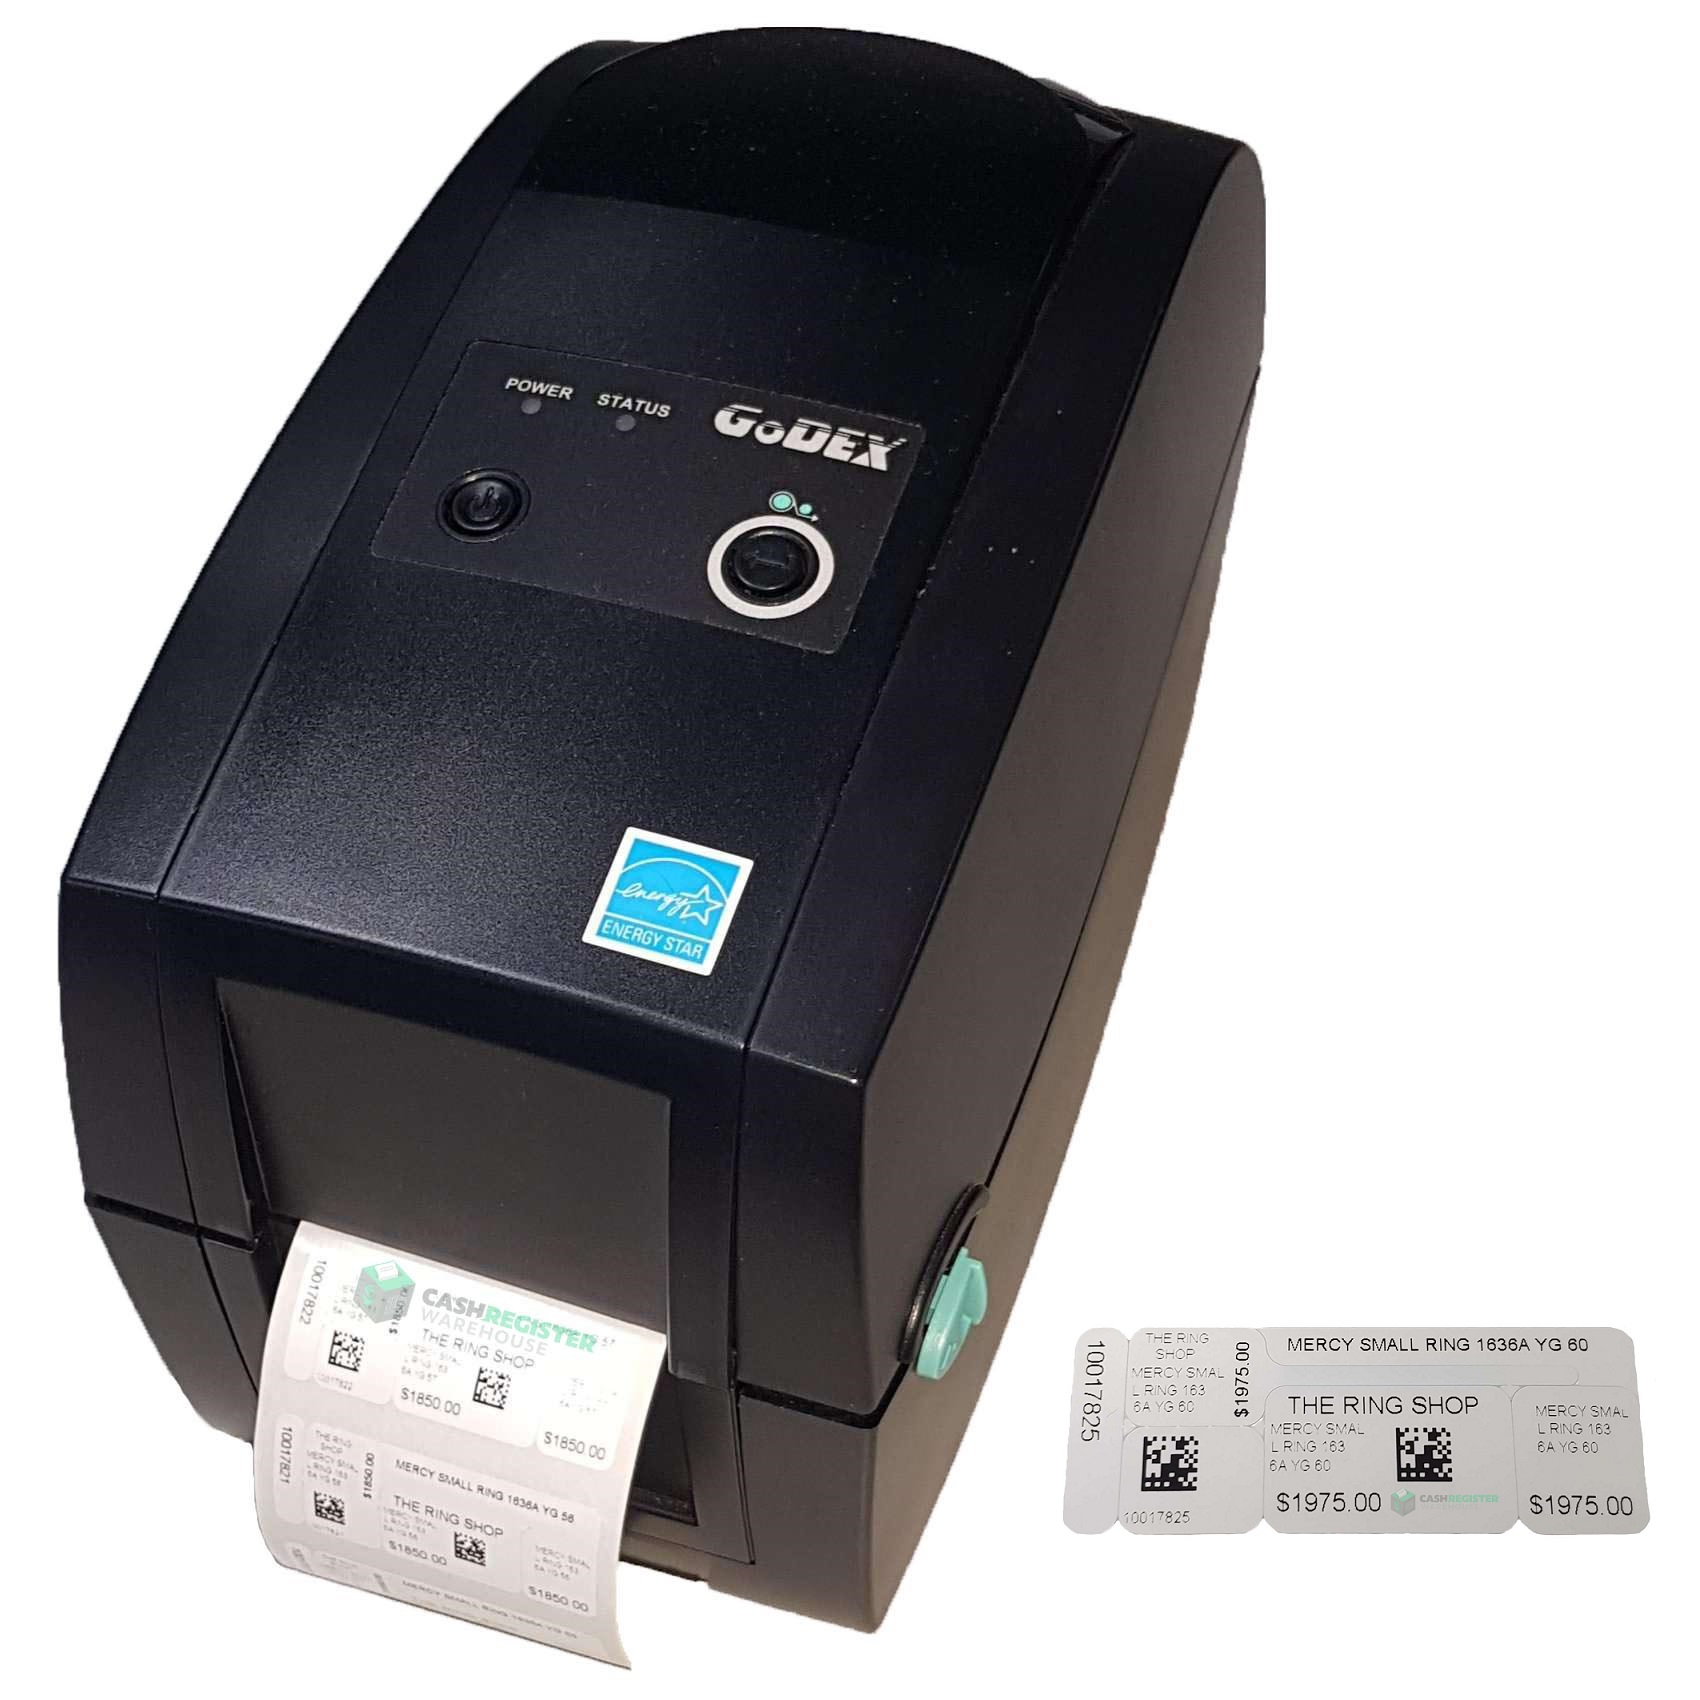 View GoDEX RT230 Jewellery Label Printer Bundle